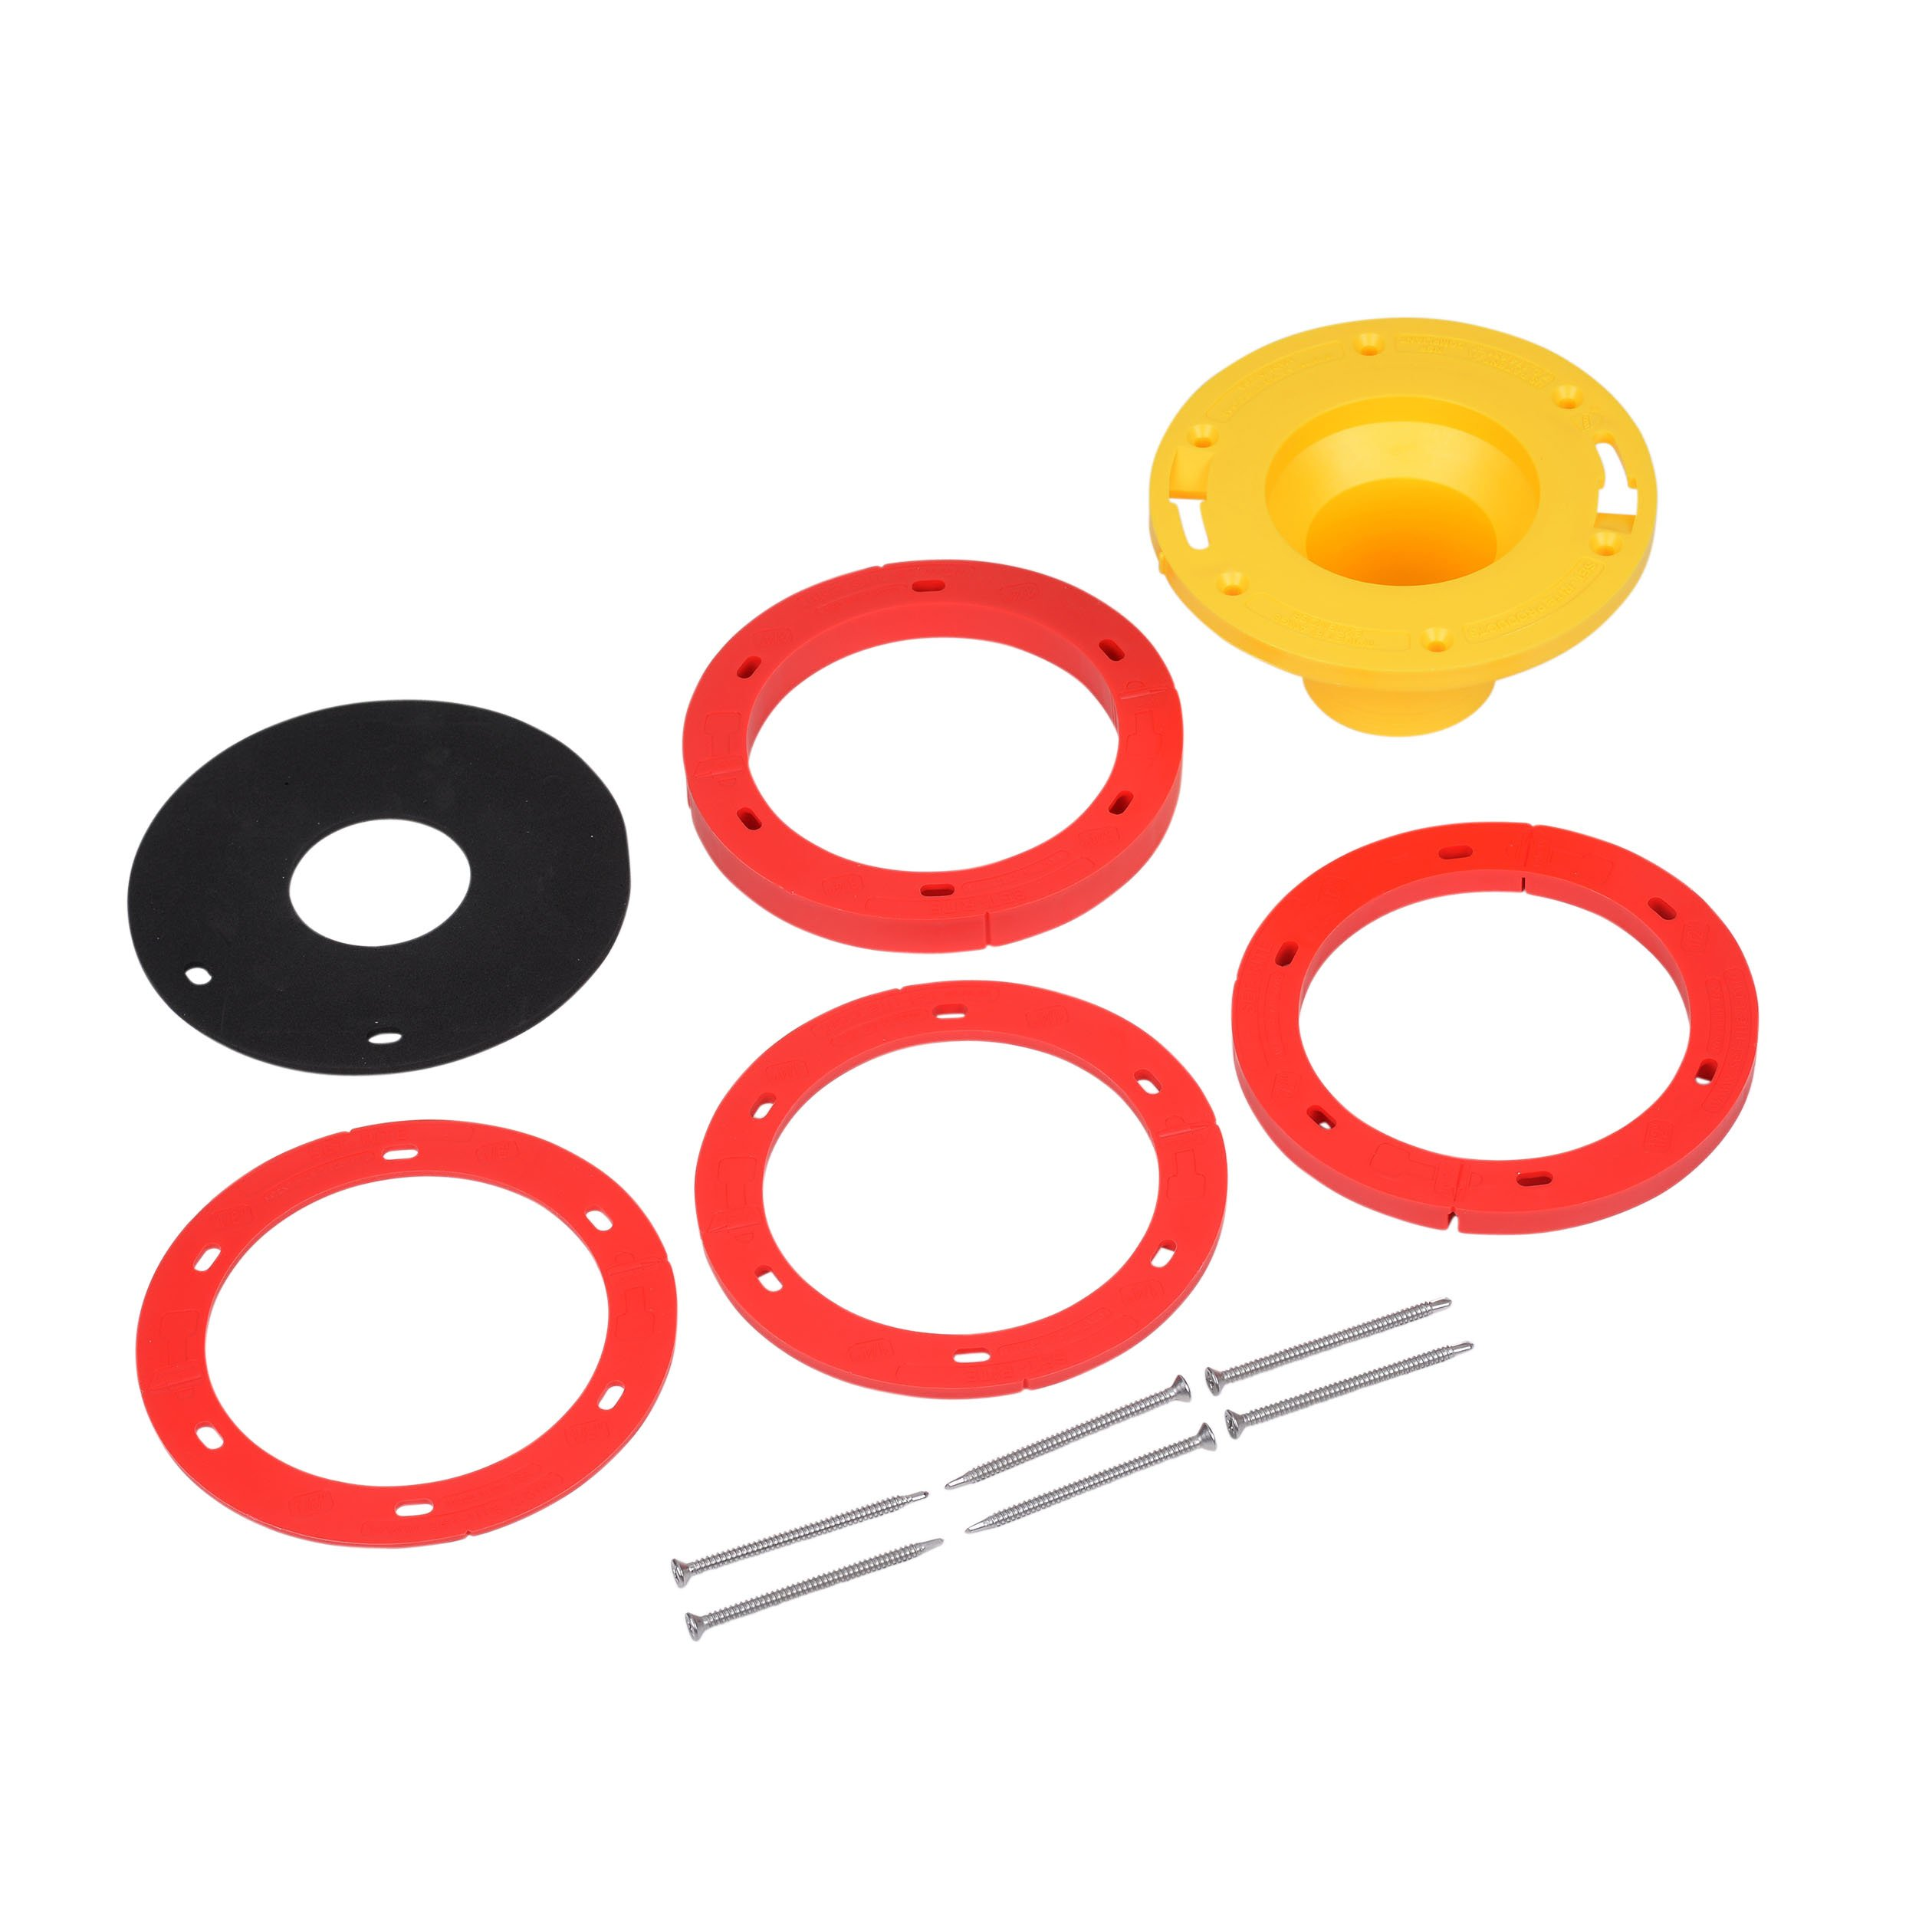 OATEY 43400 Set-Rite Toilet Flange Extension Kit, 1/4'' - 1-5/8'', Red, Yellow, used on PVC, ABS, Cast Iron and Stainless Steel by Set-Rite Products (Image #1)